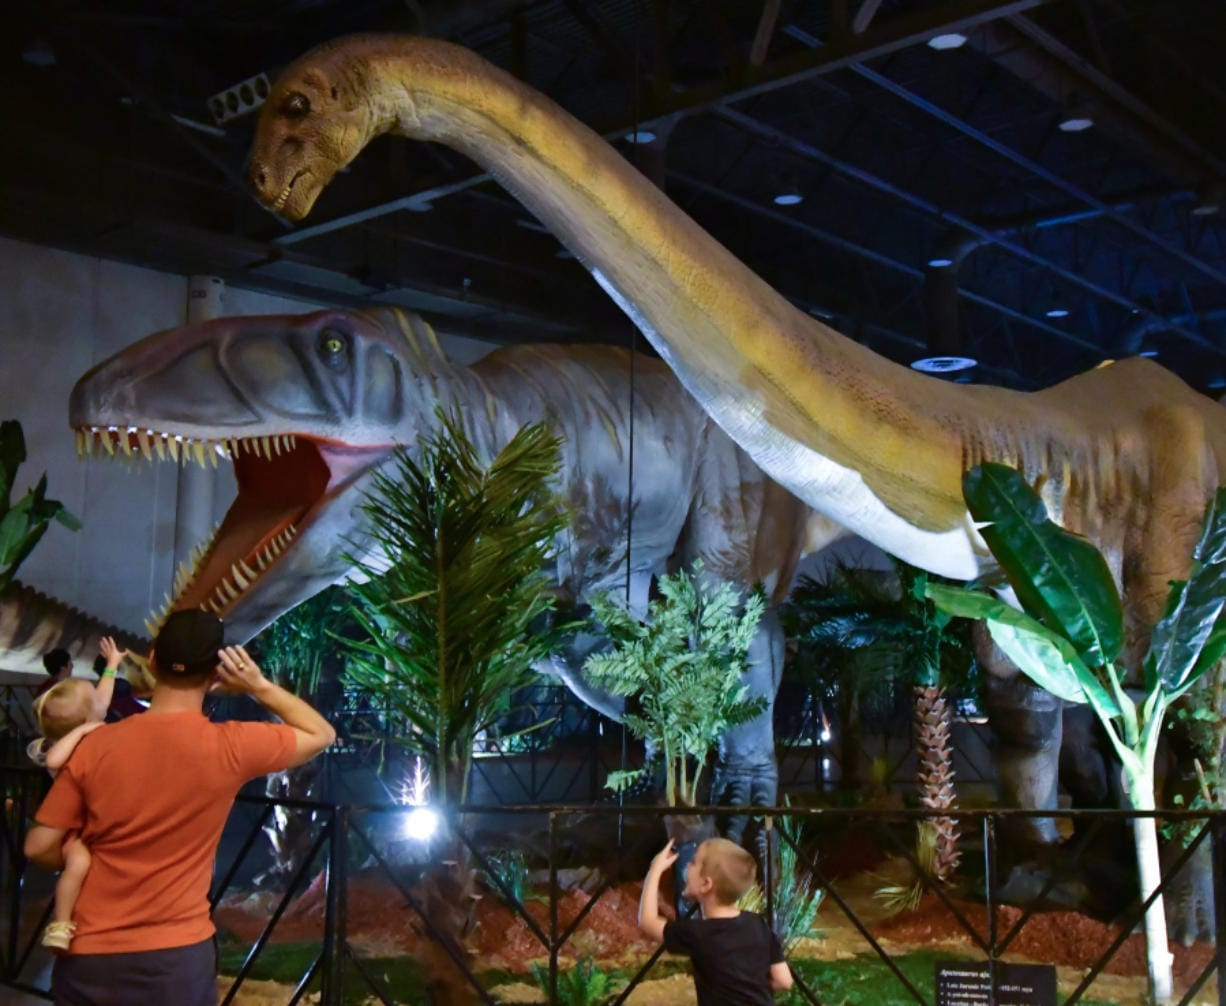 Jurassic Quest, at the Clark County Event Center at the Fairgrounds Nov. 15-17, is a realistic dinosaur event with dinosaur exhibits, a walking dinosaur show, dinosaur tours, dinosaur cinema, a science station, and dinosaur rides. (Clark County Event Center at the Fairgrounds)